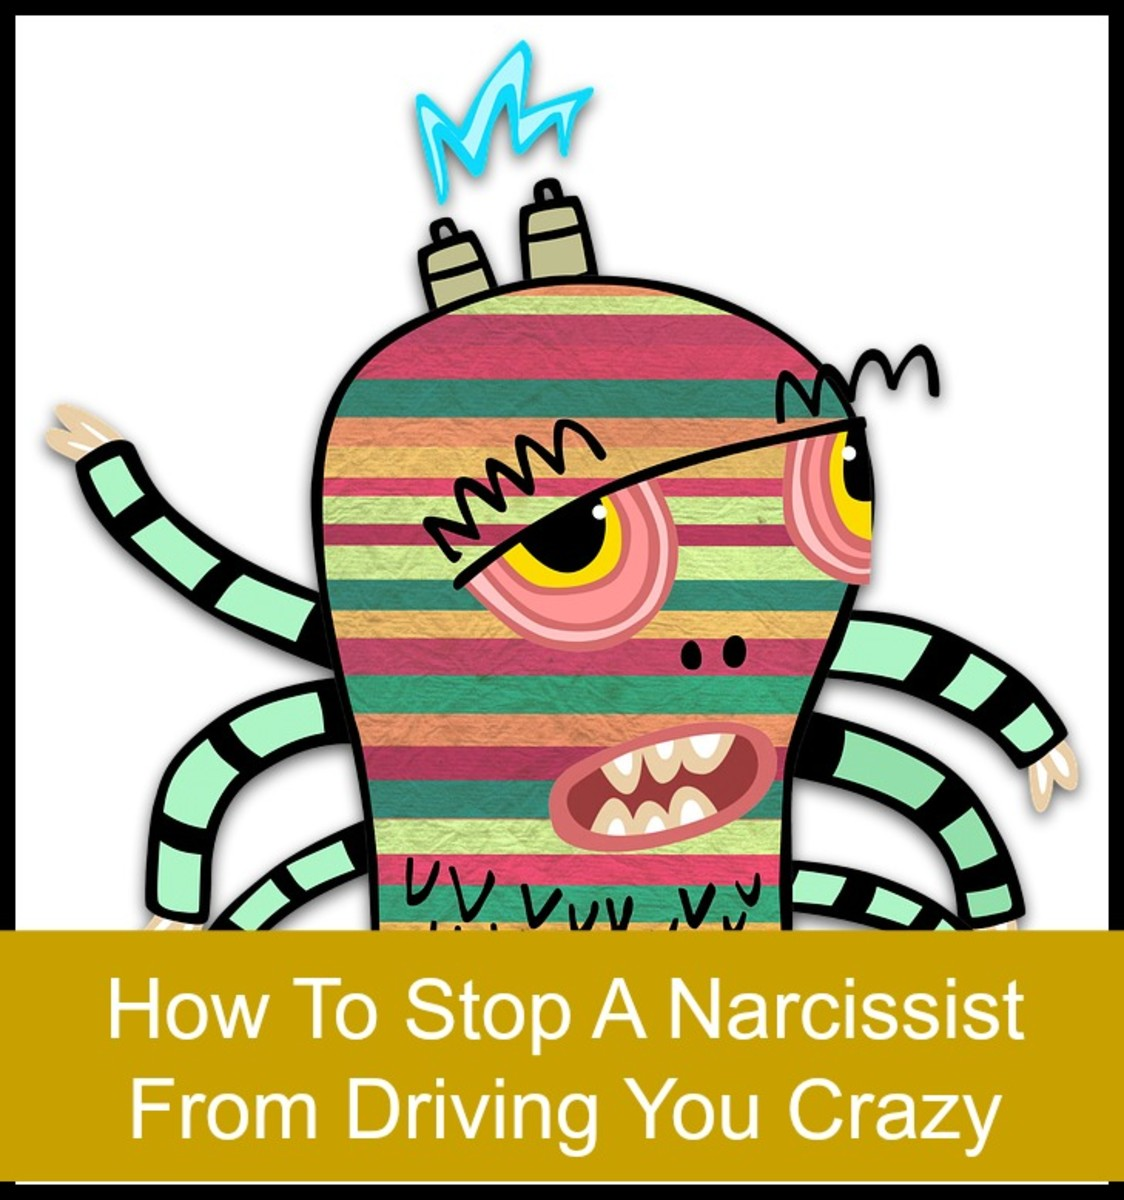 How to stop a narcissist from driving you crazy.